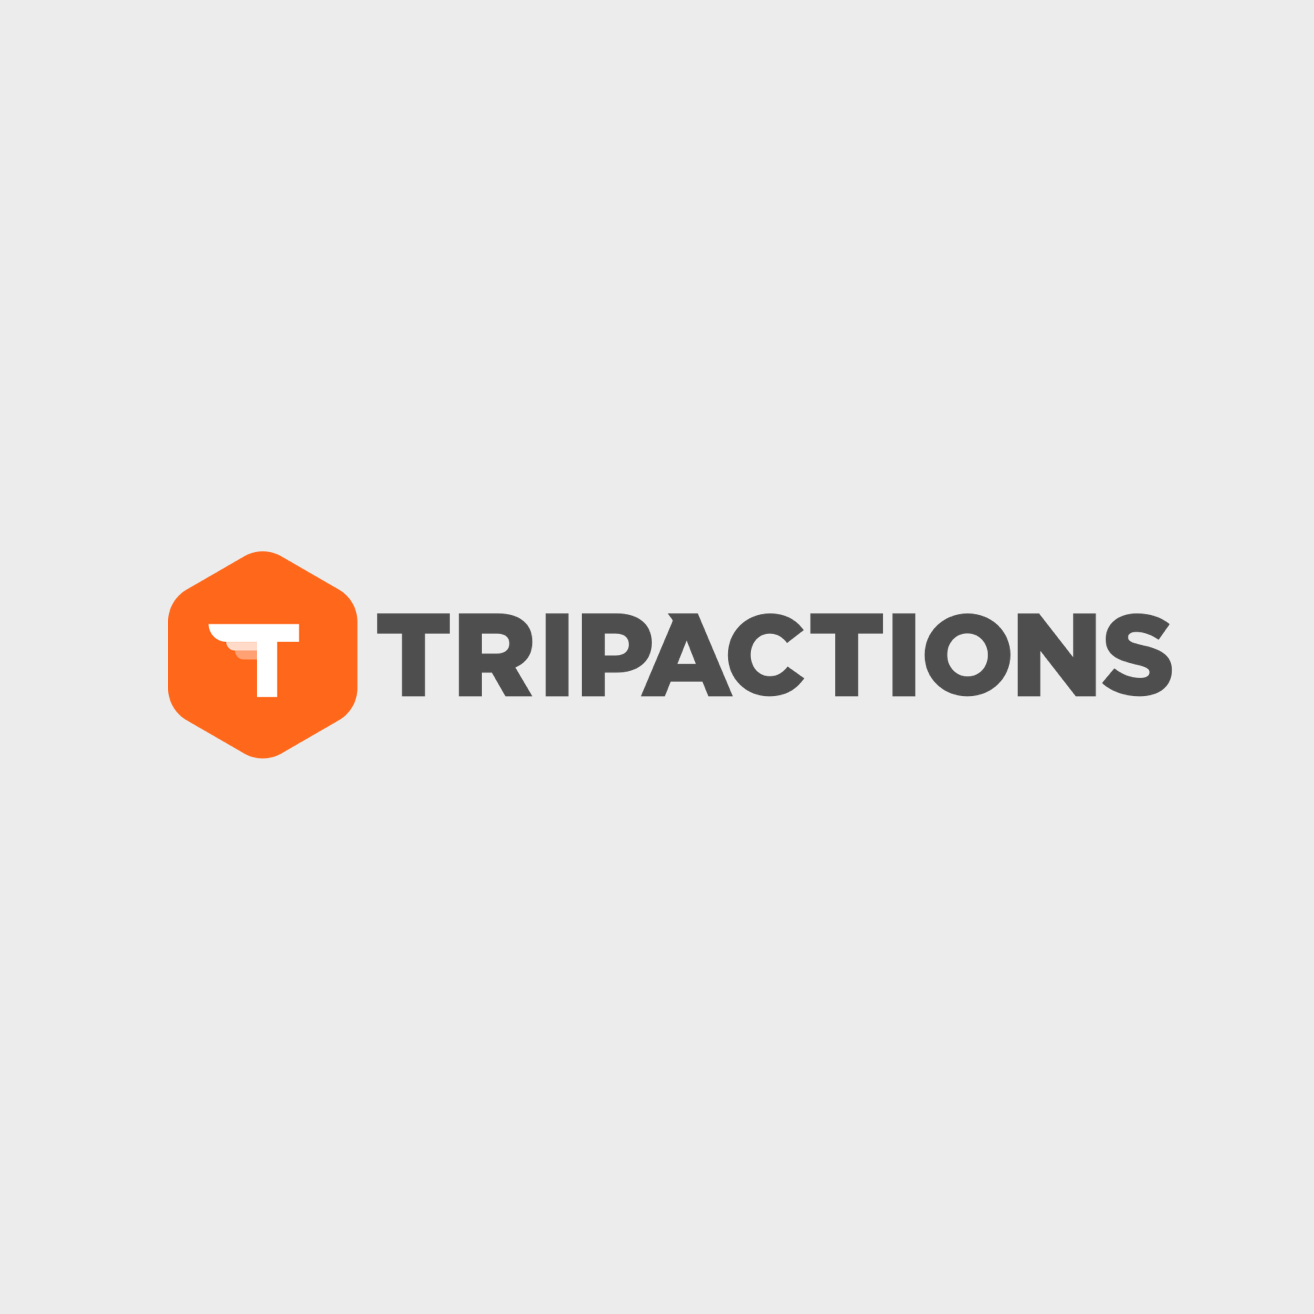 TripActions